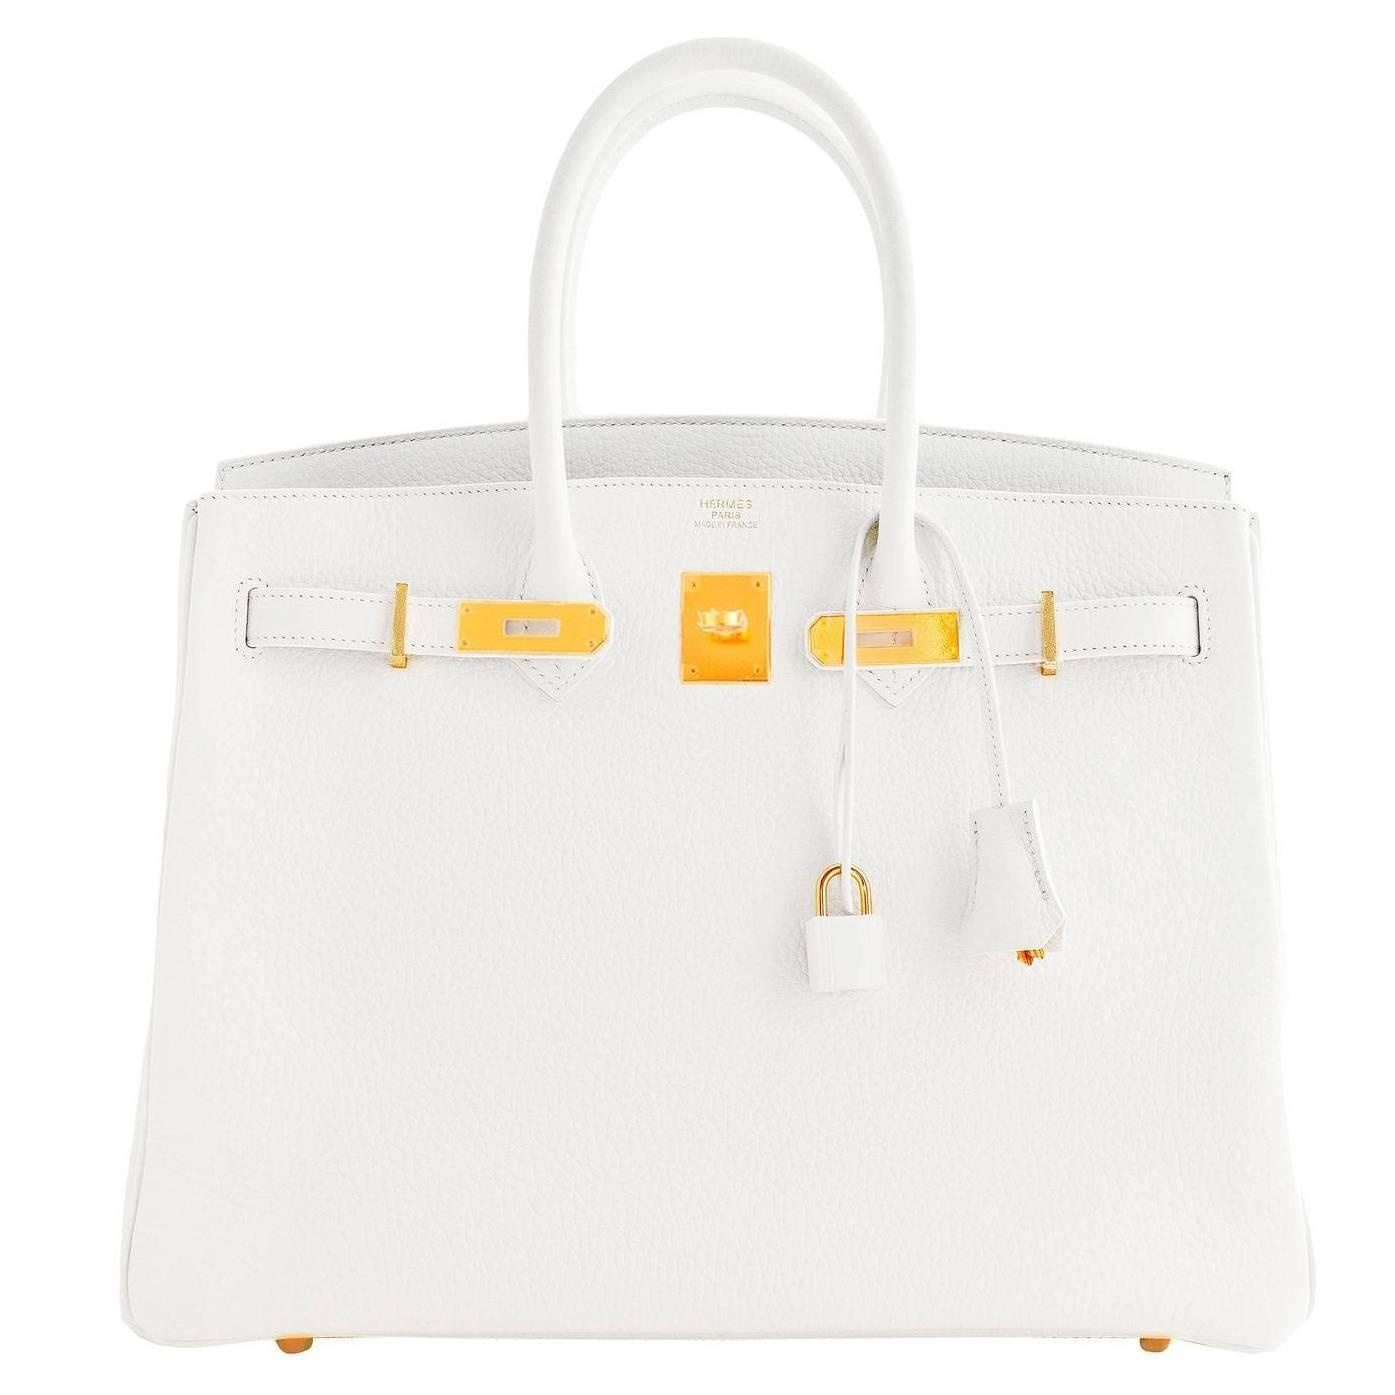 hermes taschen - Hermes White Gold 35cm Birkin GHW Fresh 2016 Bag Interior X Stamp ...